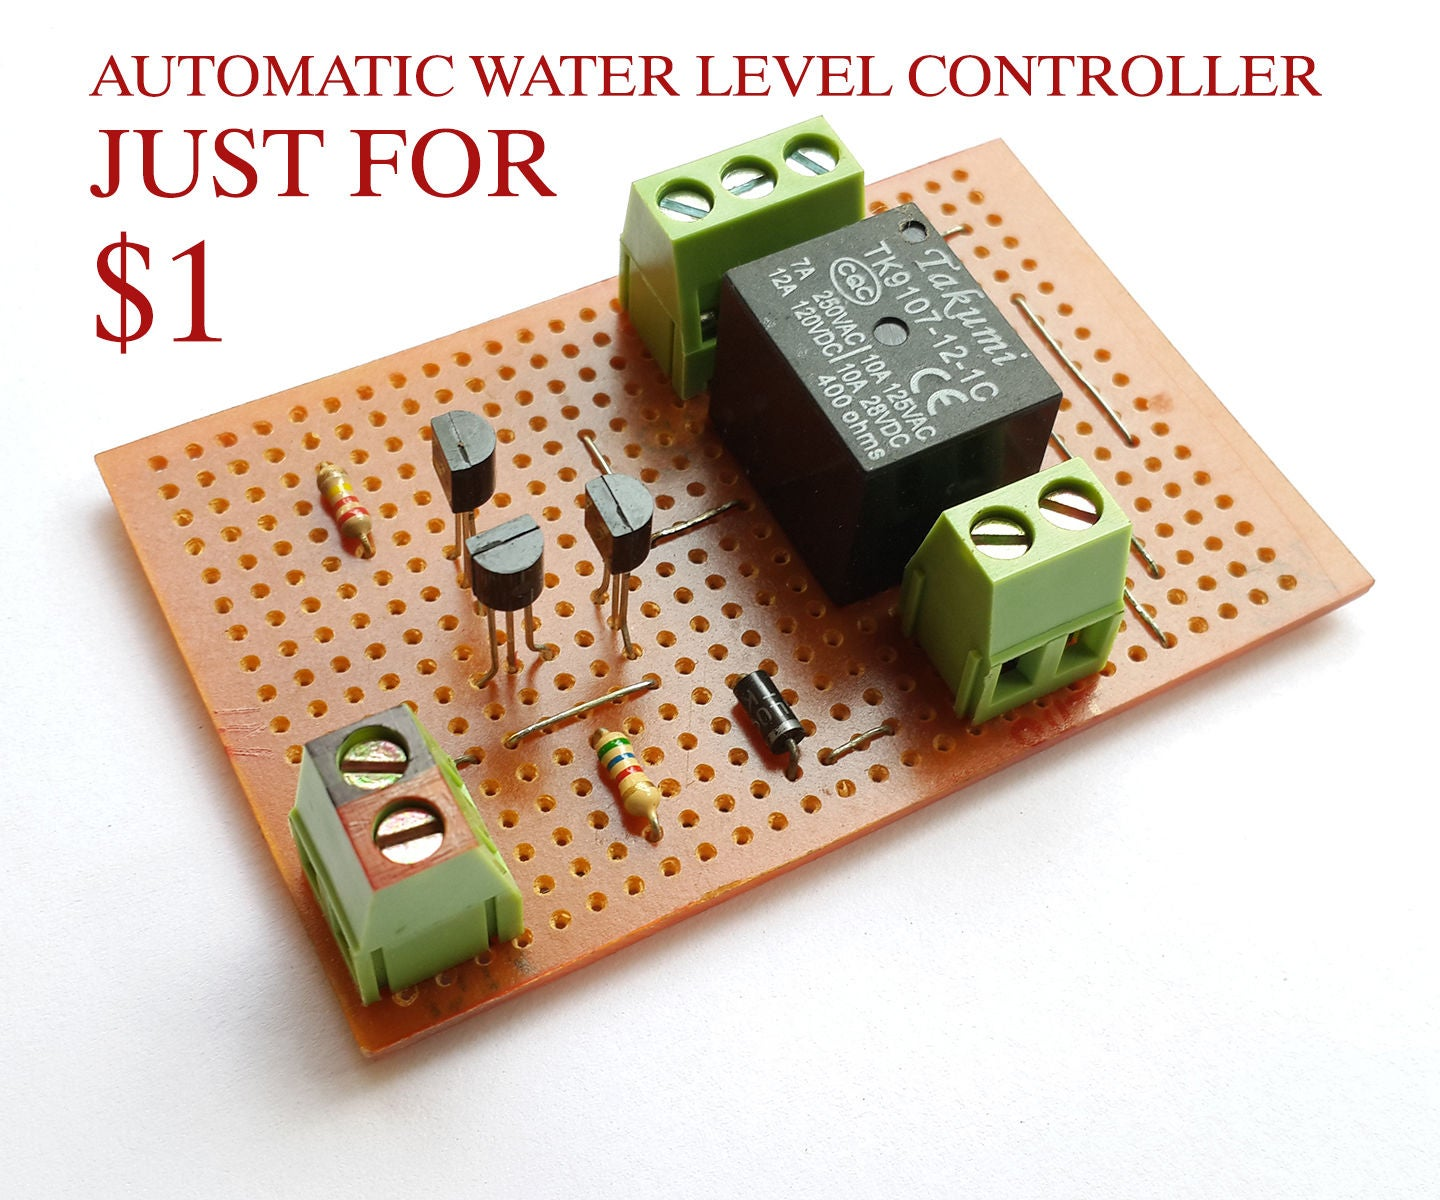 1 Automatic Water Level Controller 5 Steps With Pictures Low Battery Indicator Circuit Diagram Electronic Circuits